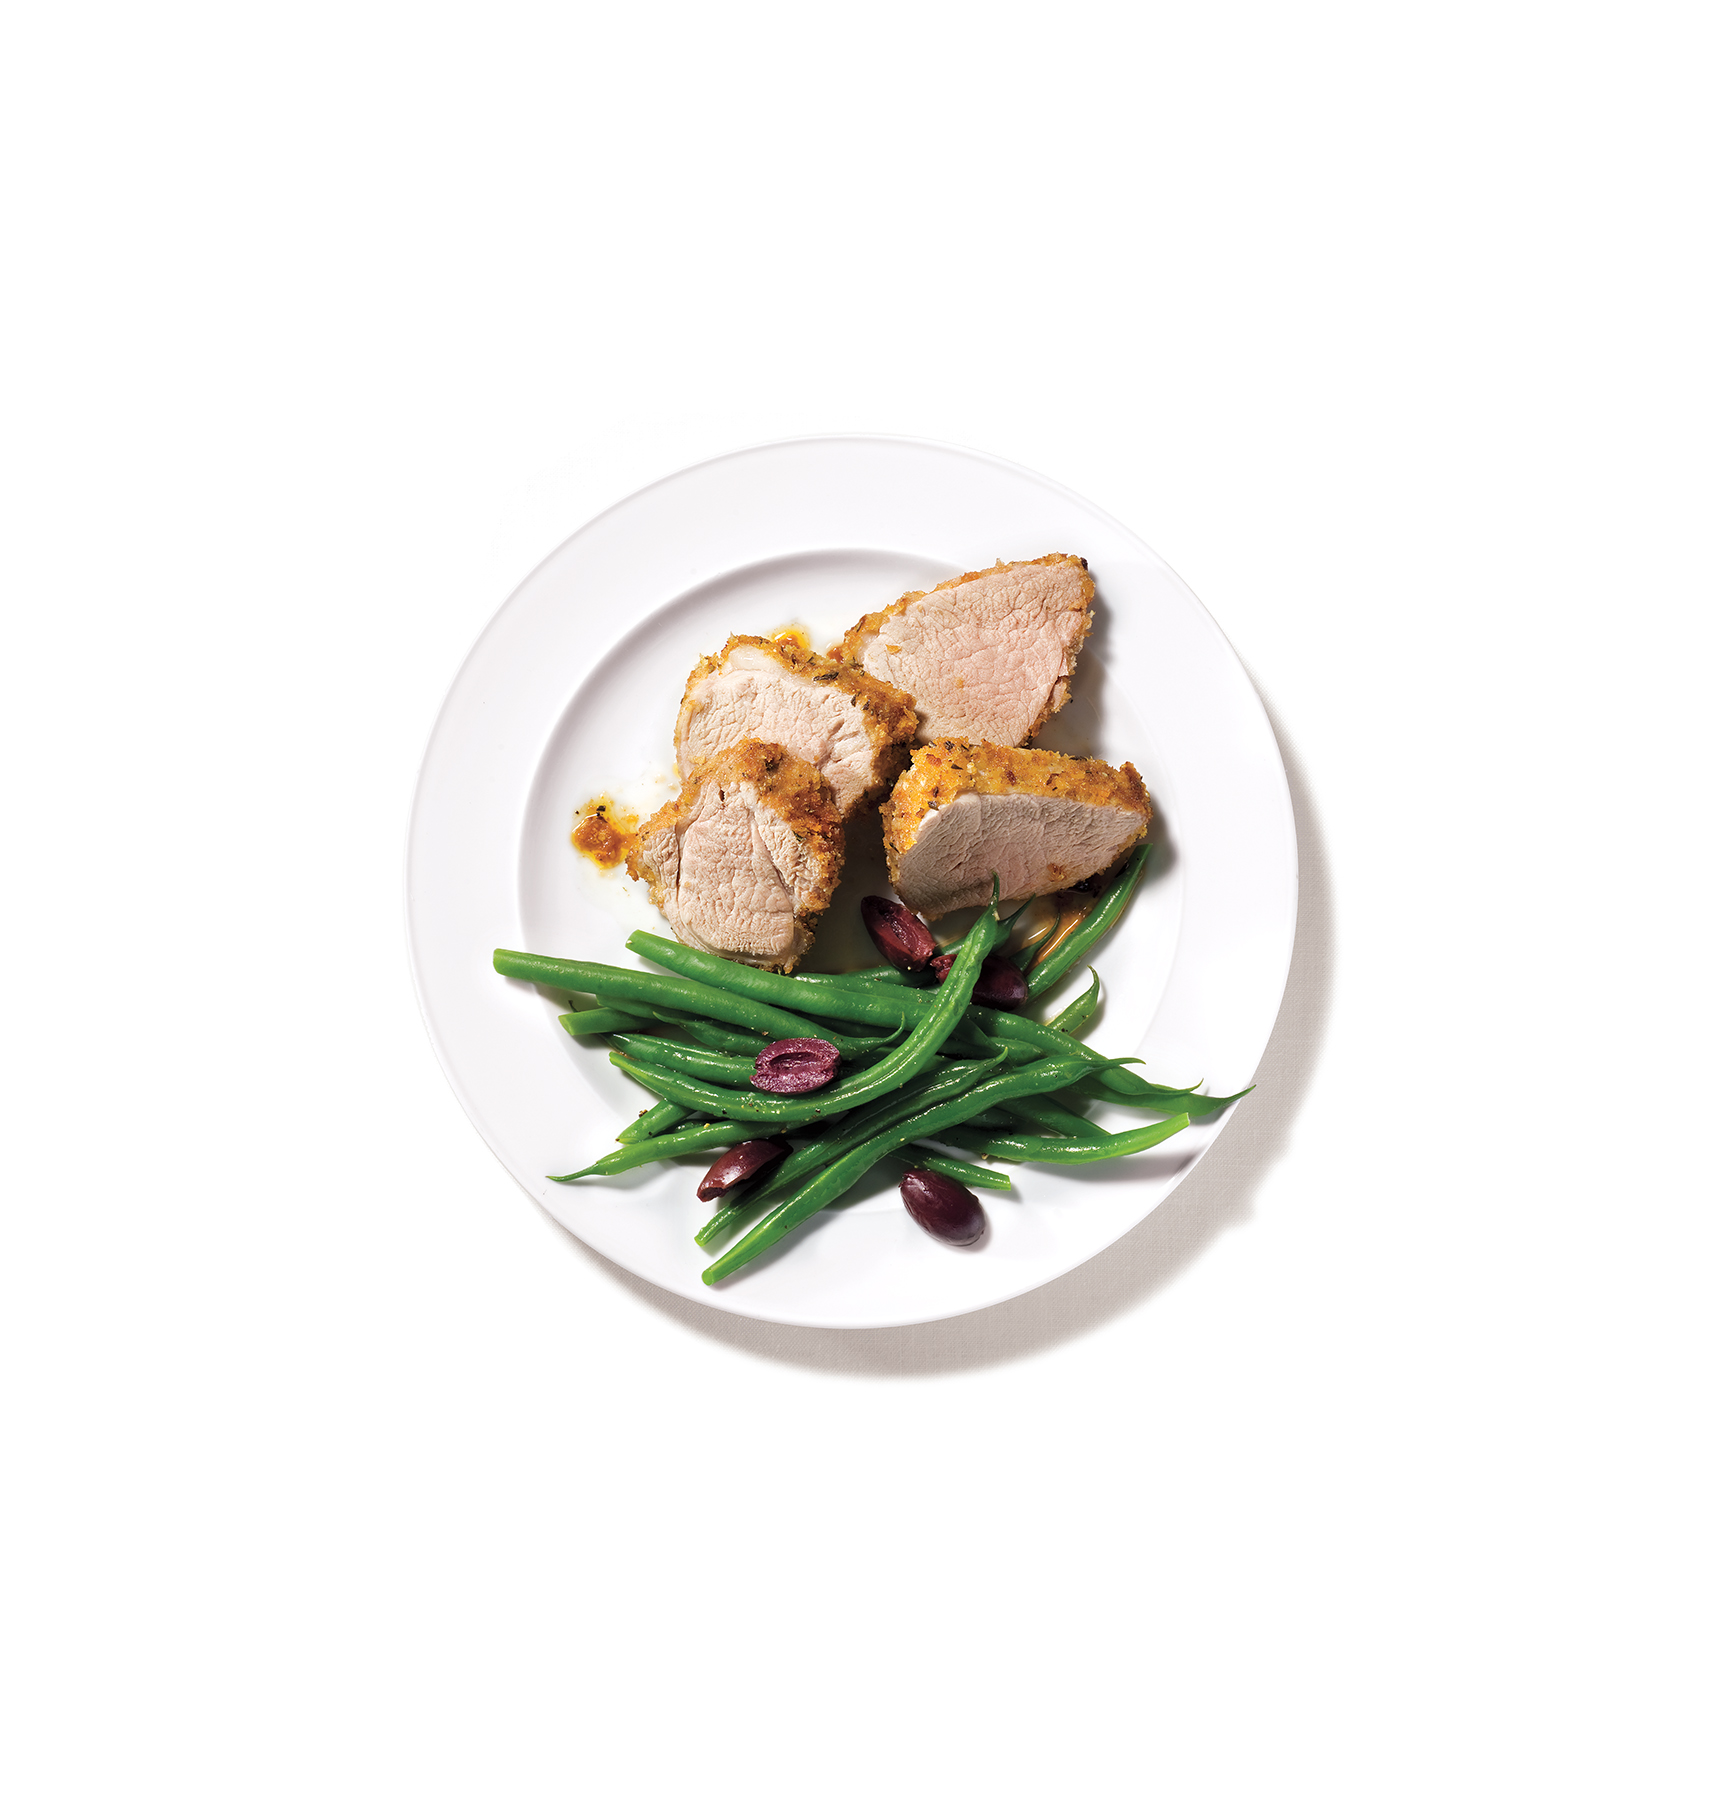 Rosemary-crusted pork